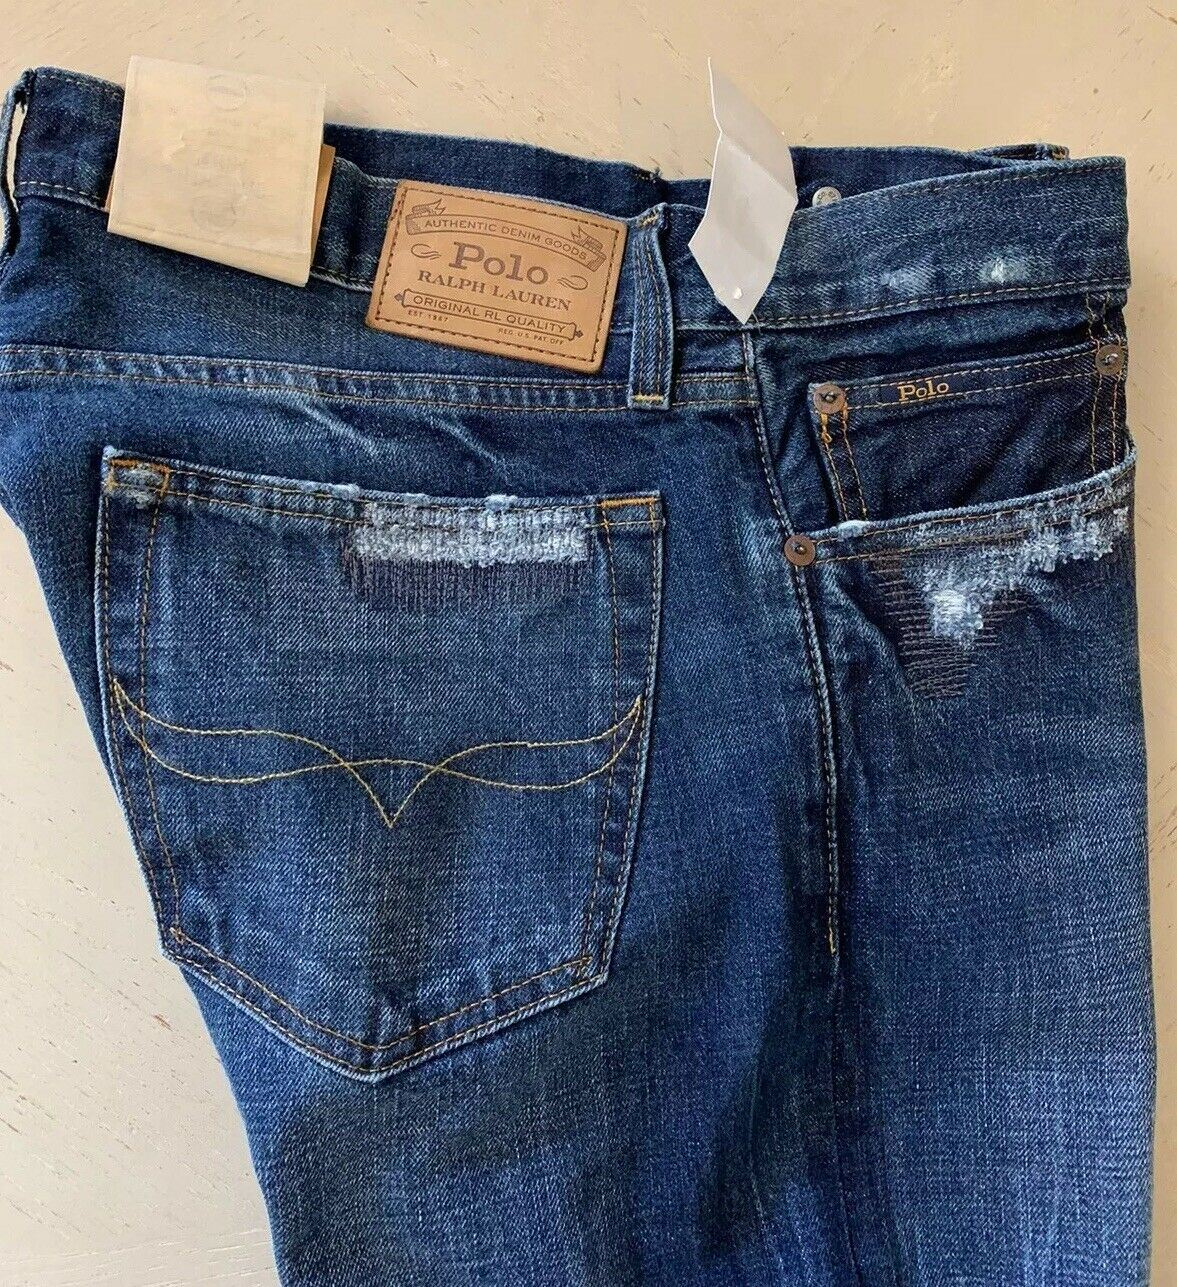 NWT Polo Ralph Lauren Mens Jeans Pants Blue  Size 32/32L US